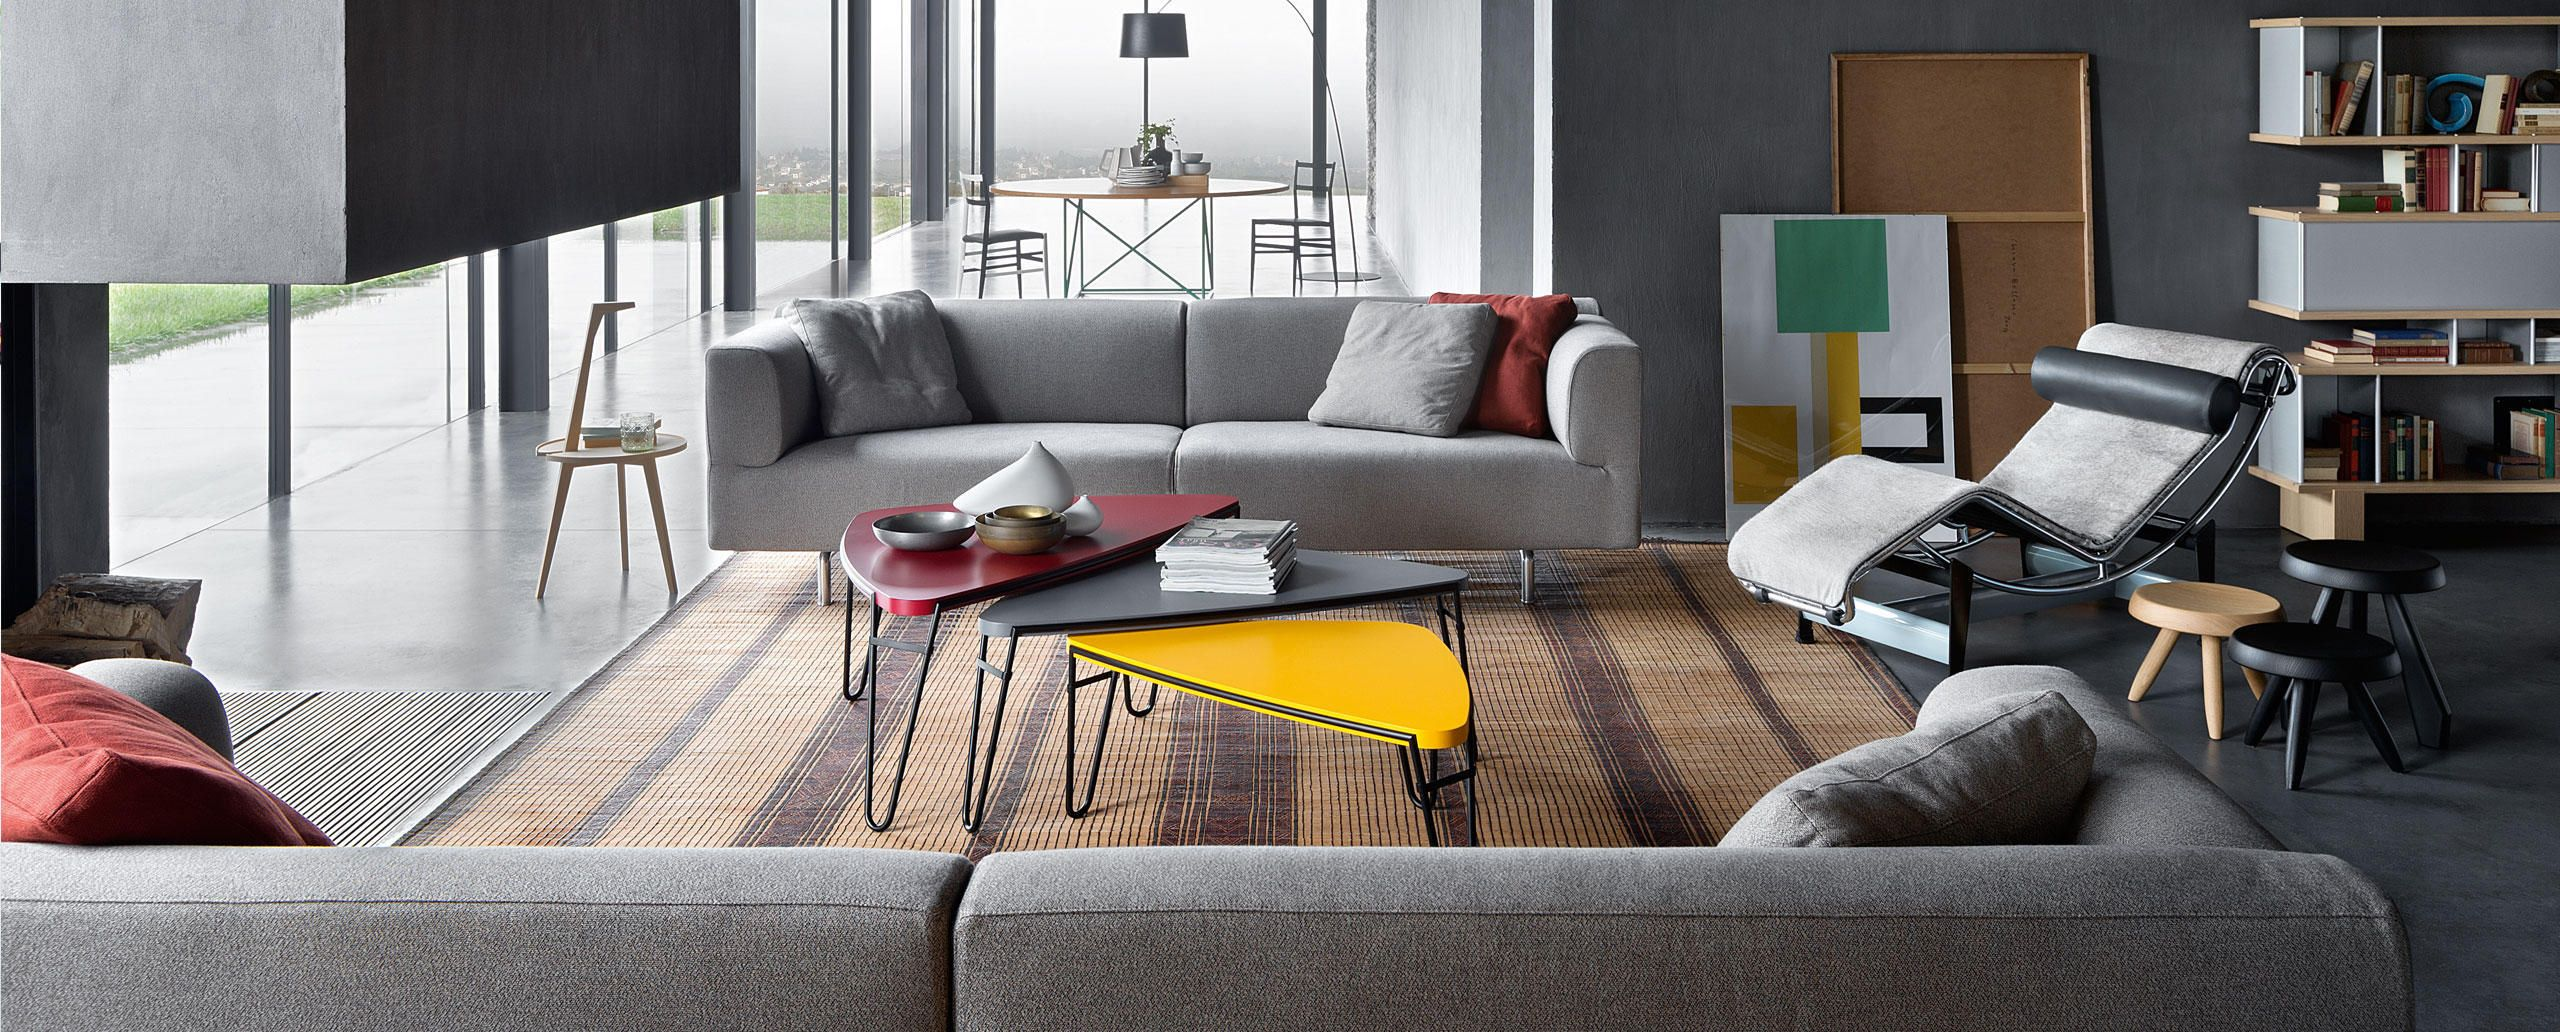 250 met divano sofas by piero lissoni cassina agk table coffee table design y space furniture - Divano toot cassina ...